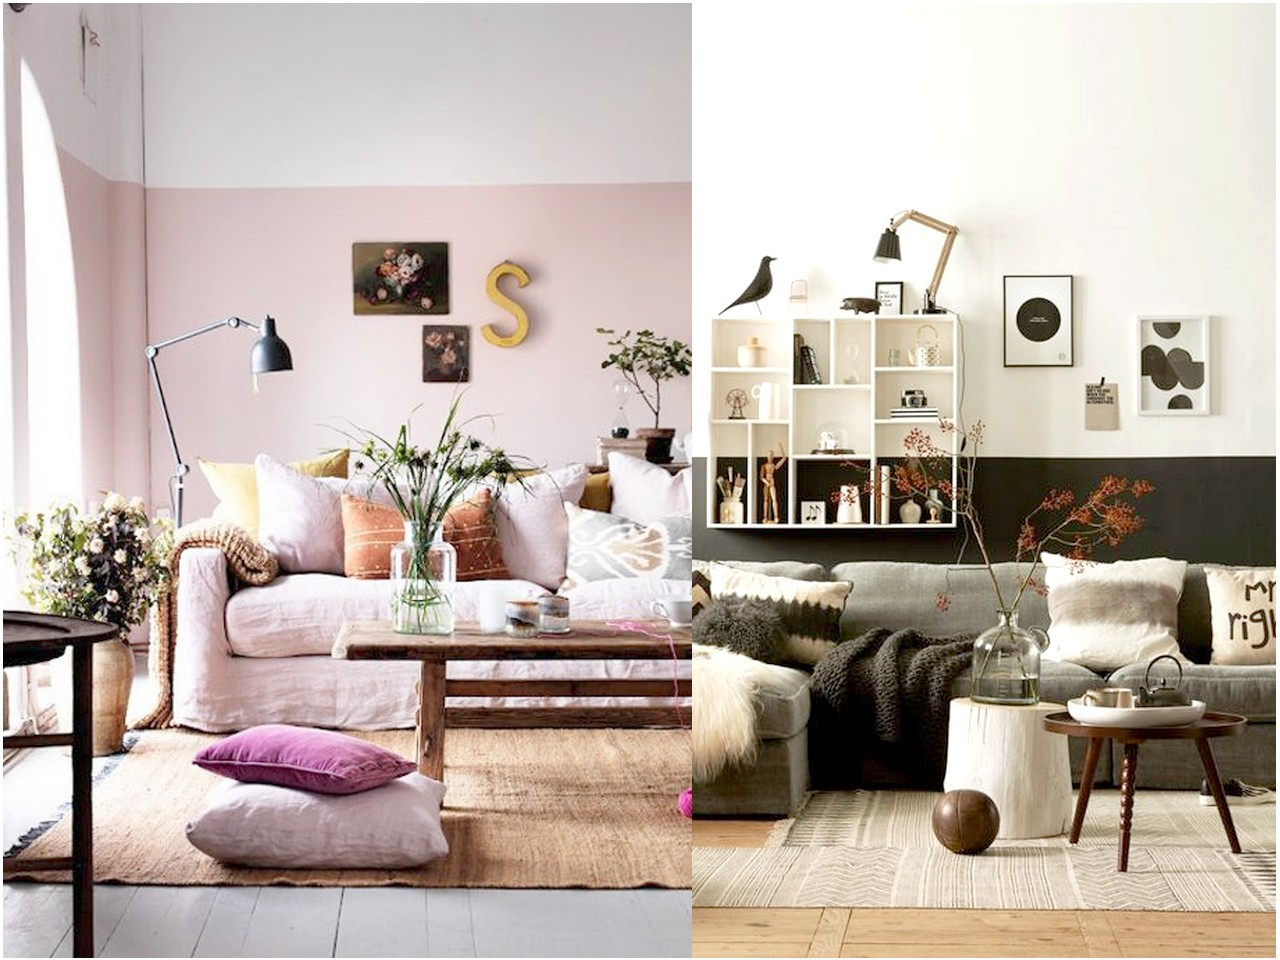 7 ideas para decorar con poco dinero el sal n de tu casa - Ideas para decorar una pared de salon ...